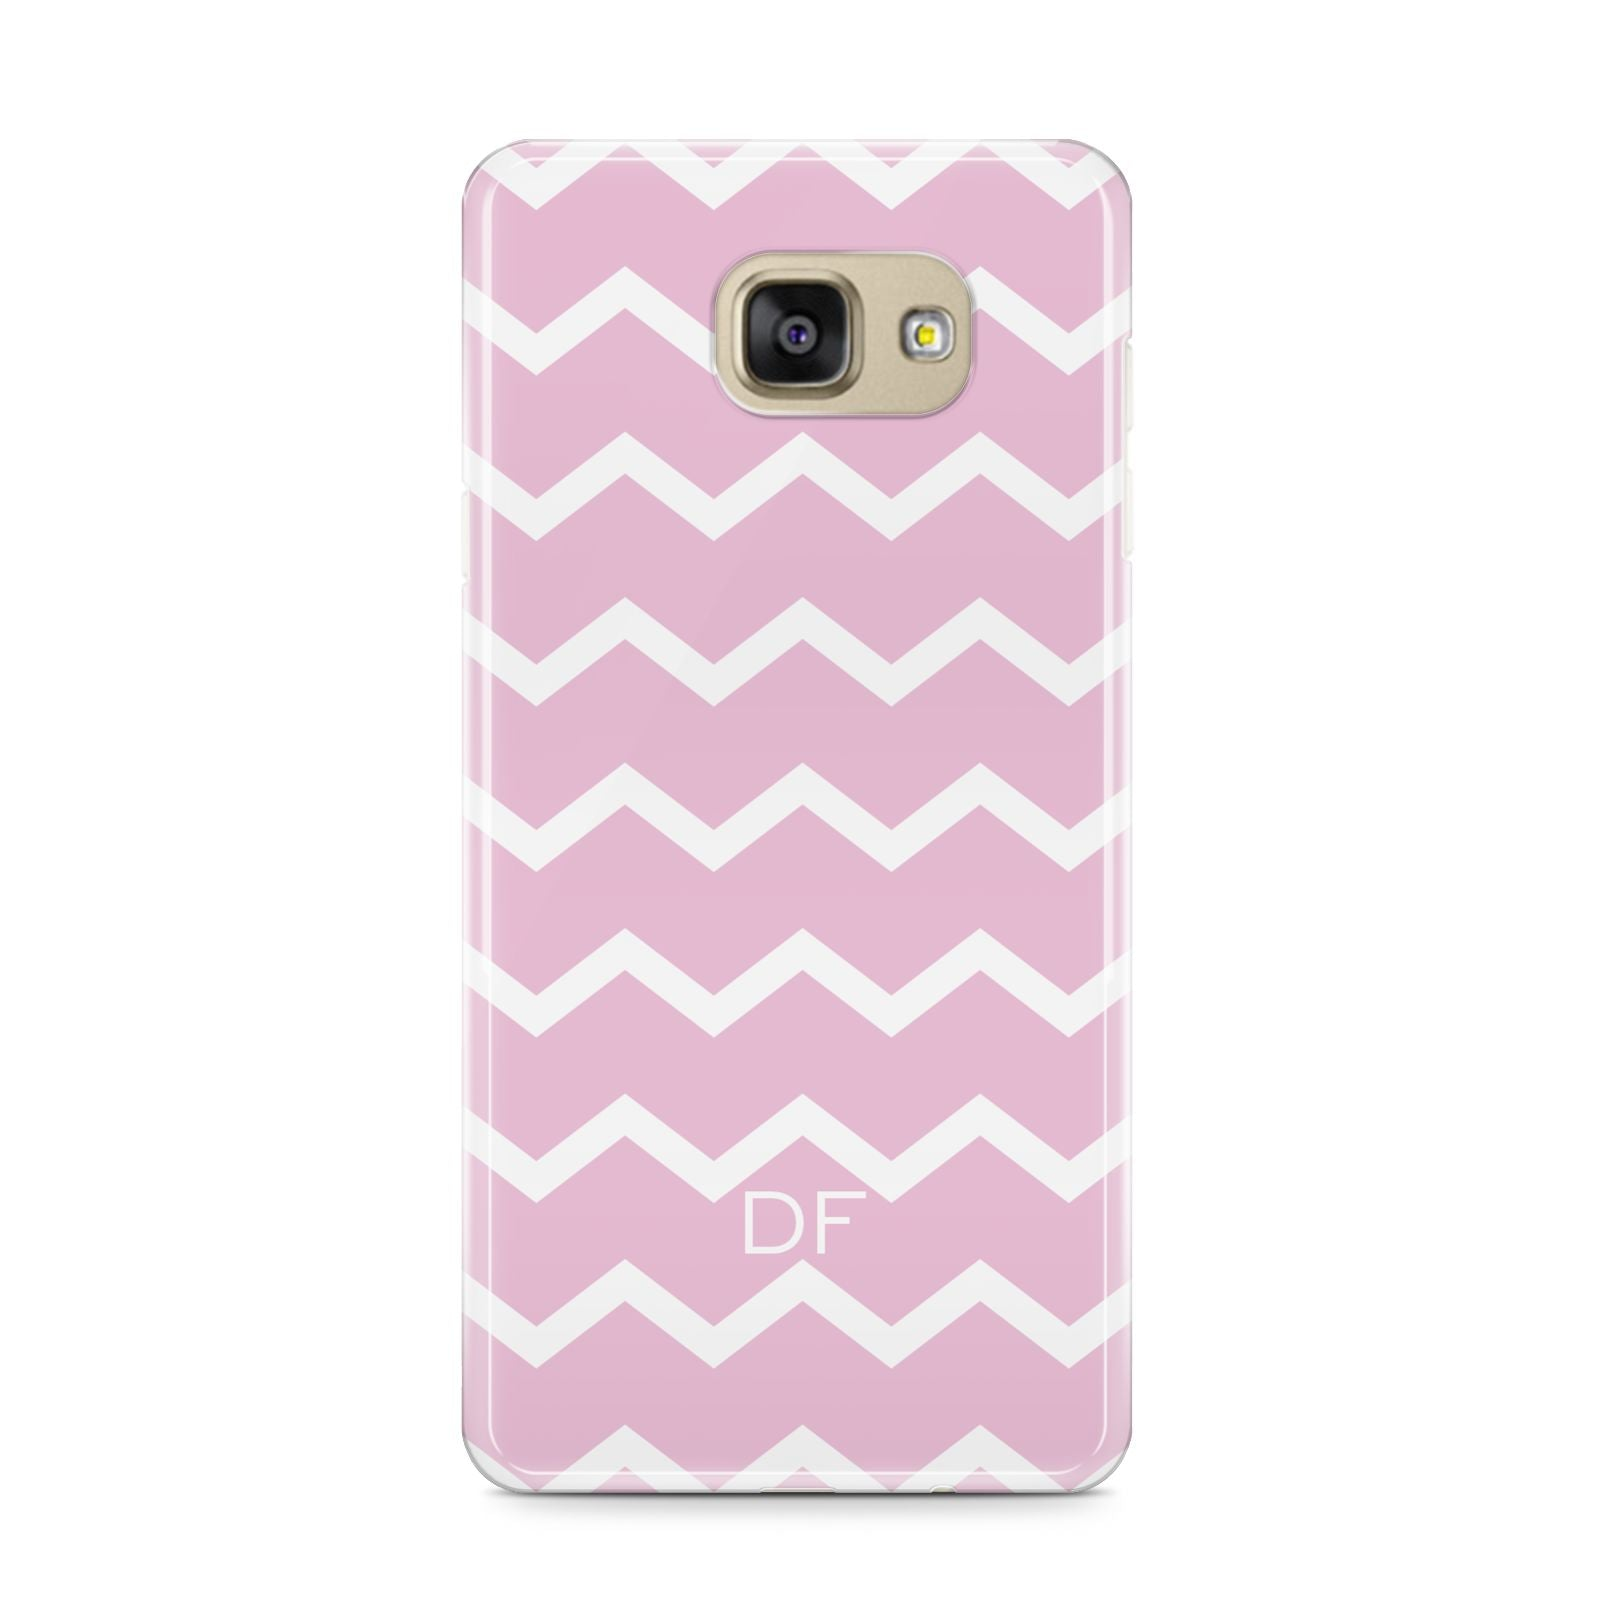 Personalised Chevron Pink Samsung Galaxy A9 2016 Case on gold phone